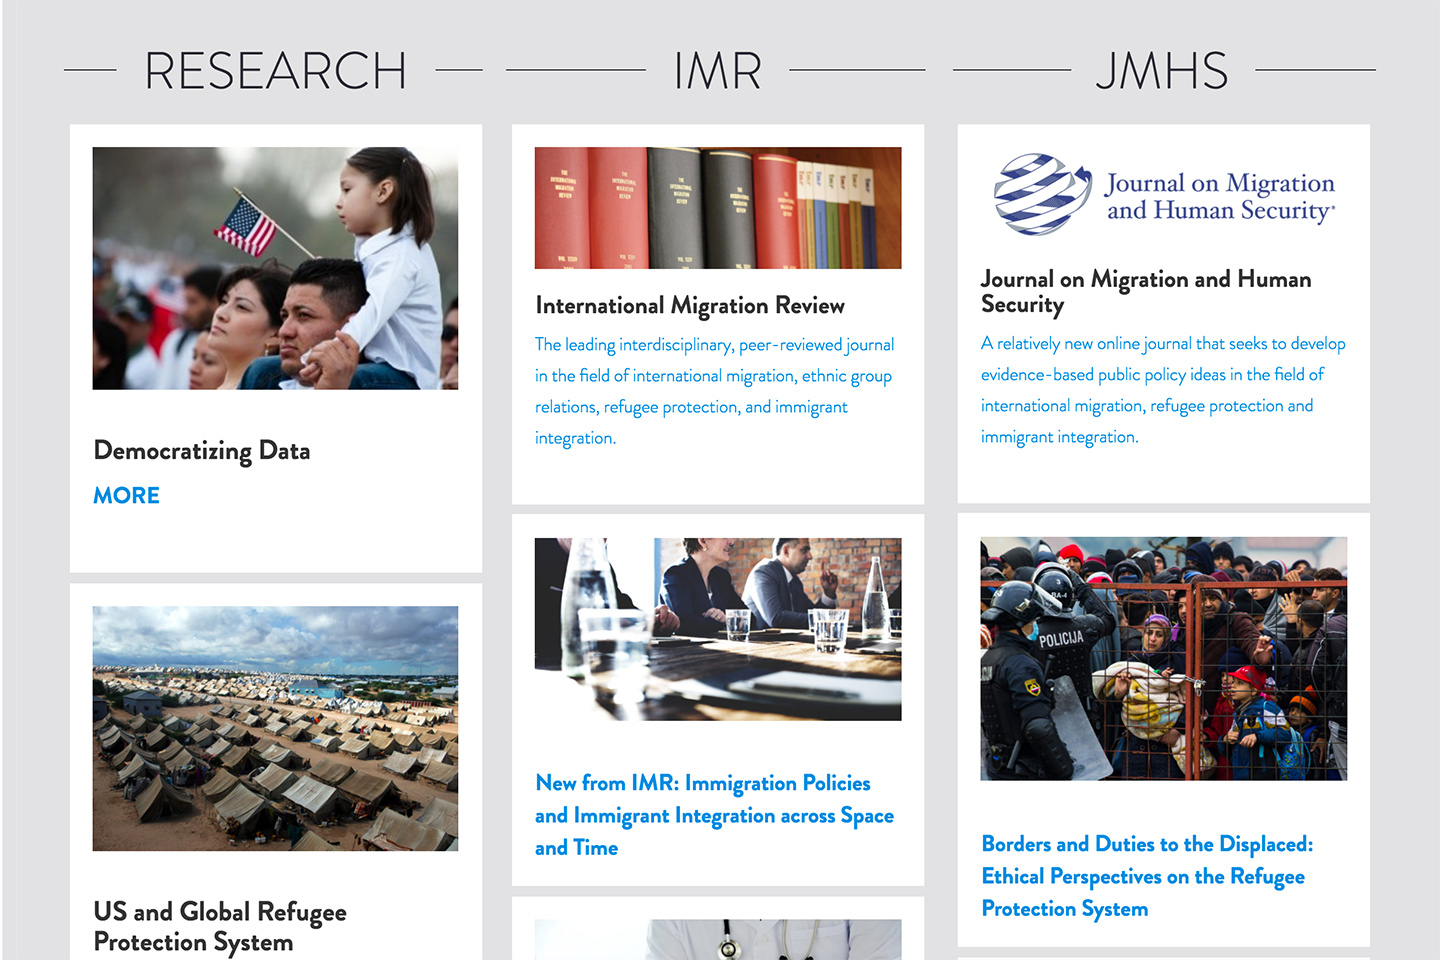 Center for Migration Studies - Featured Content